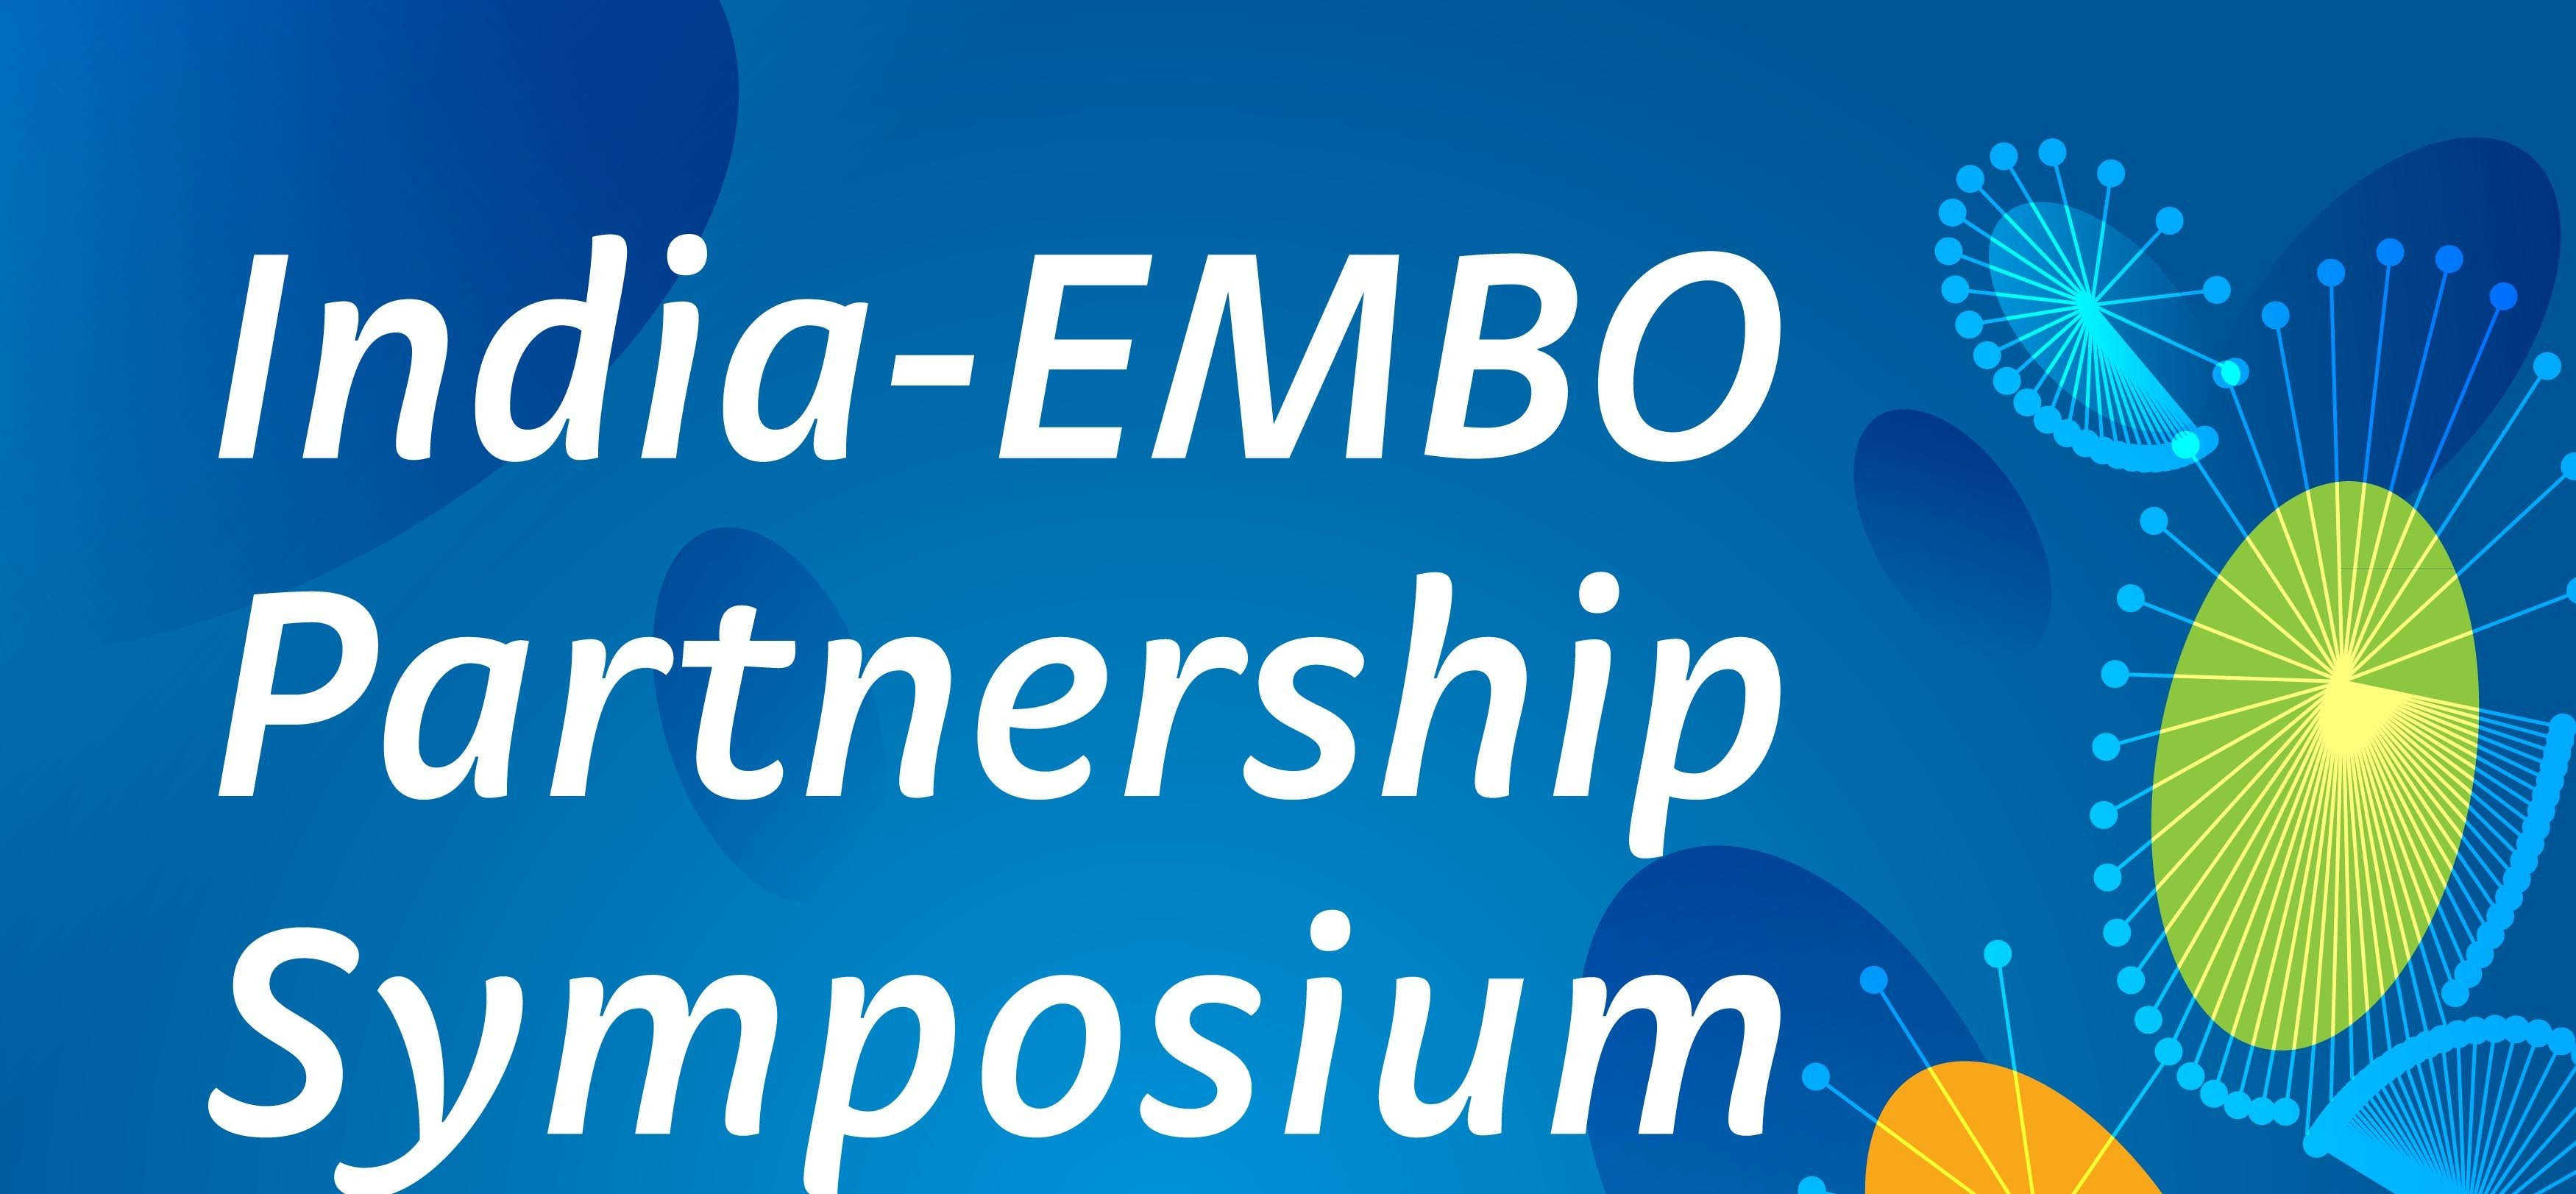 India Embo Launch